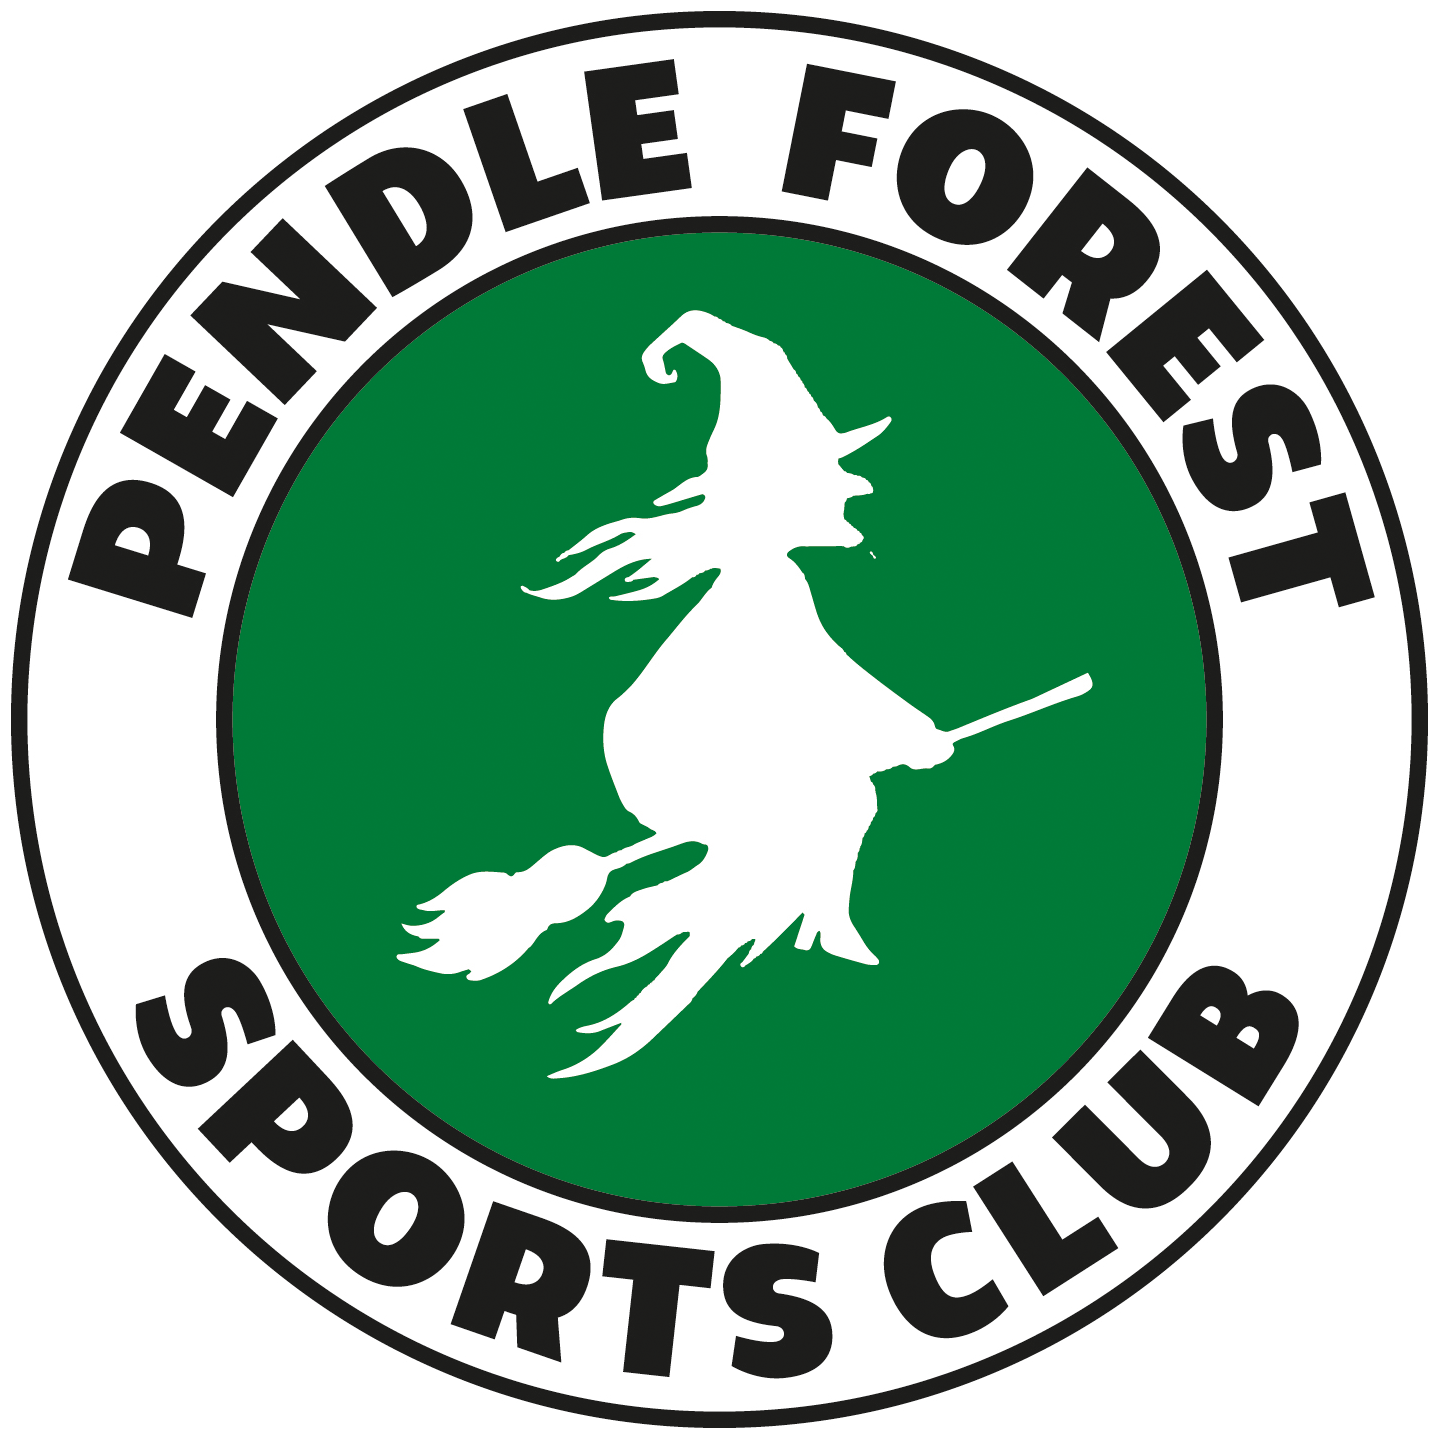 Pendle Forest Sports Club